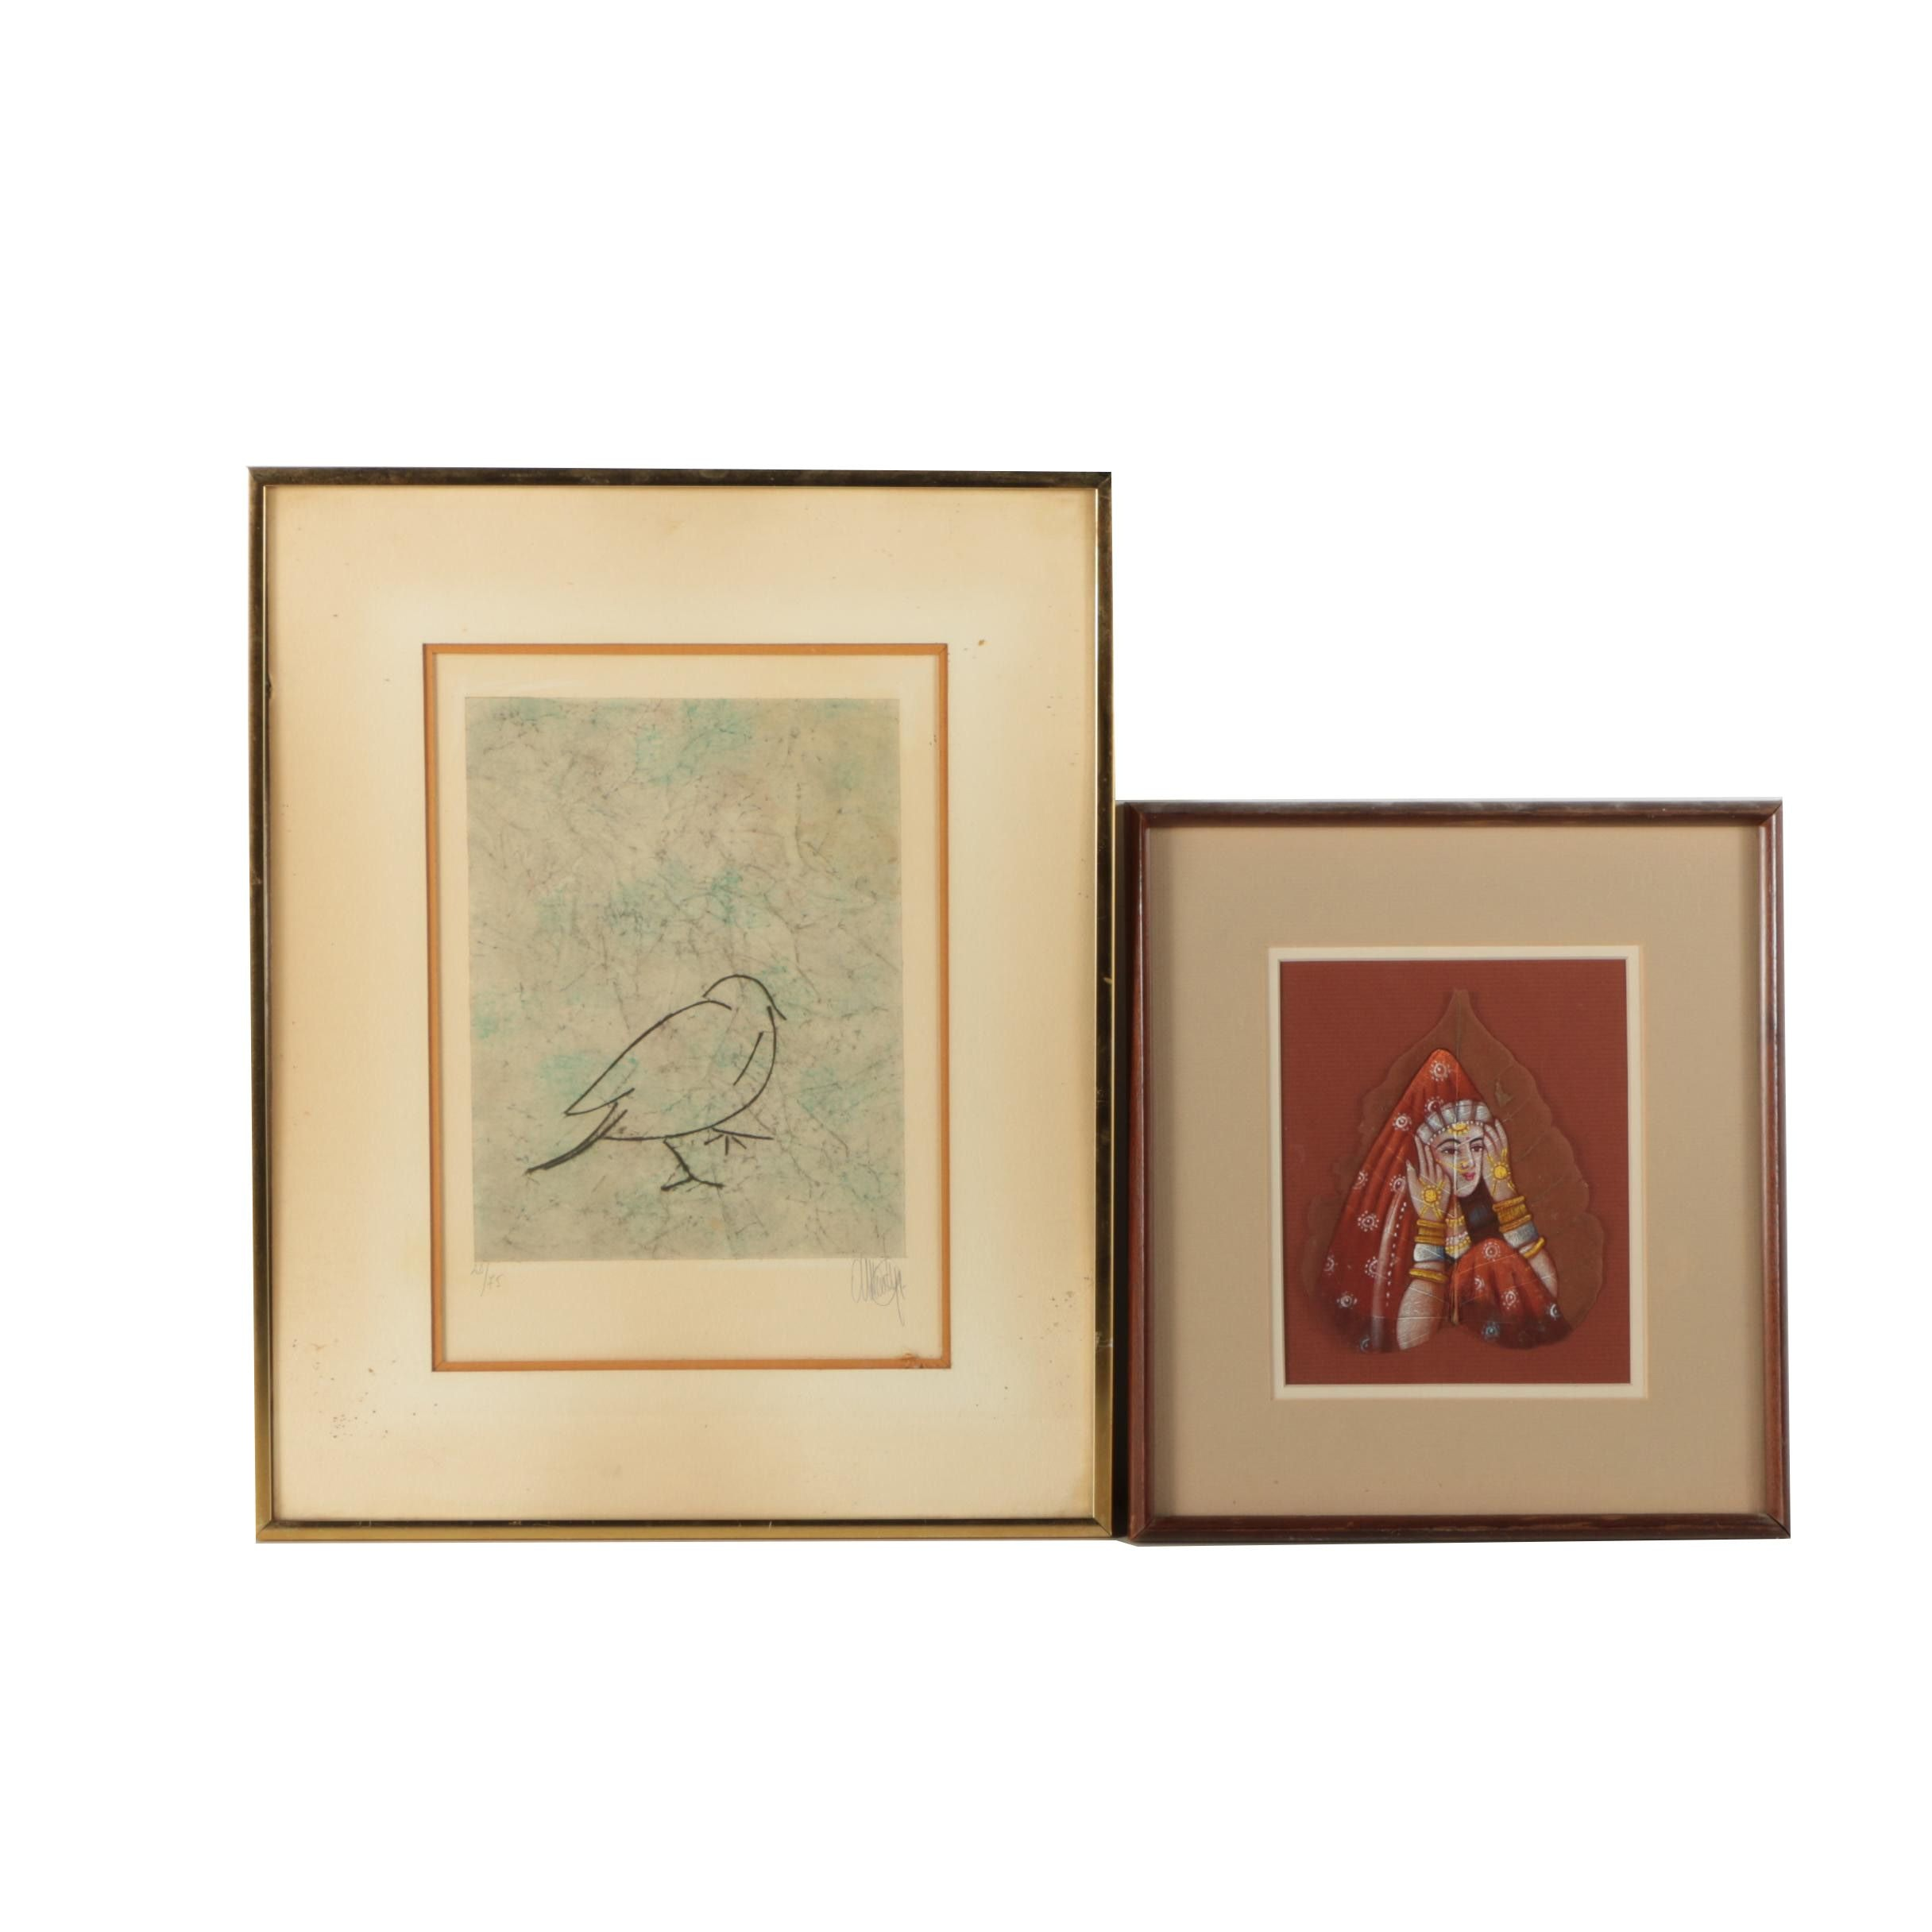 Limited Edition Lithograph with Portrait of an Indo-Persian Woman on a Leaf